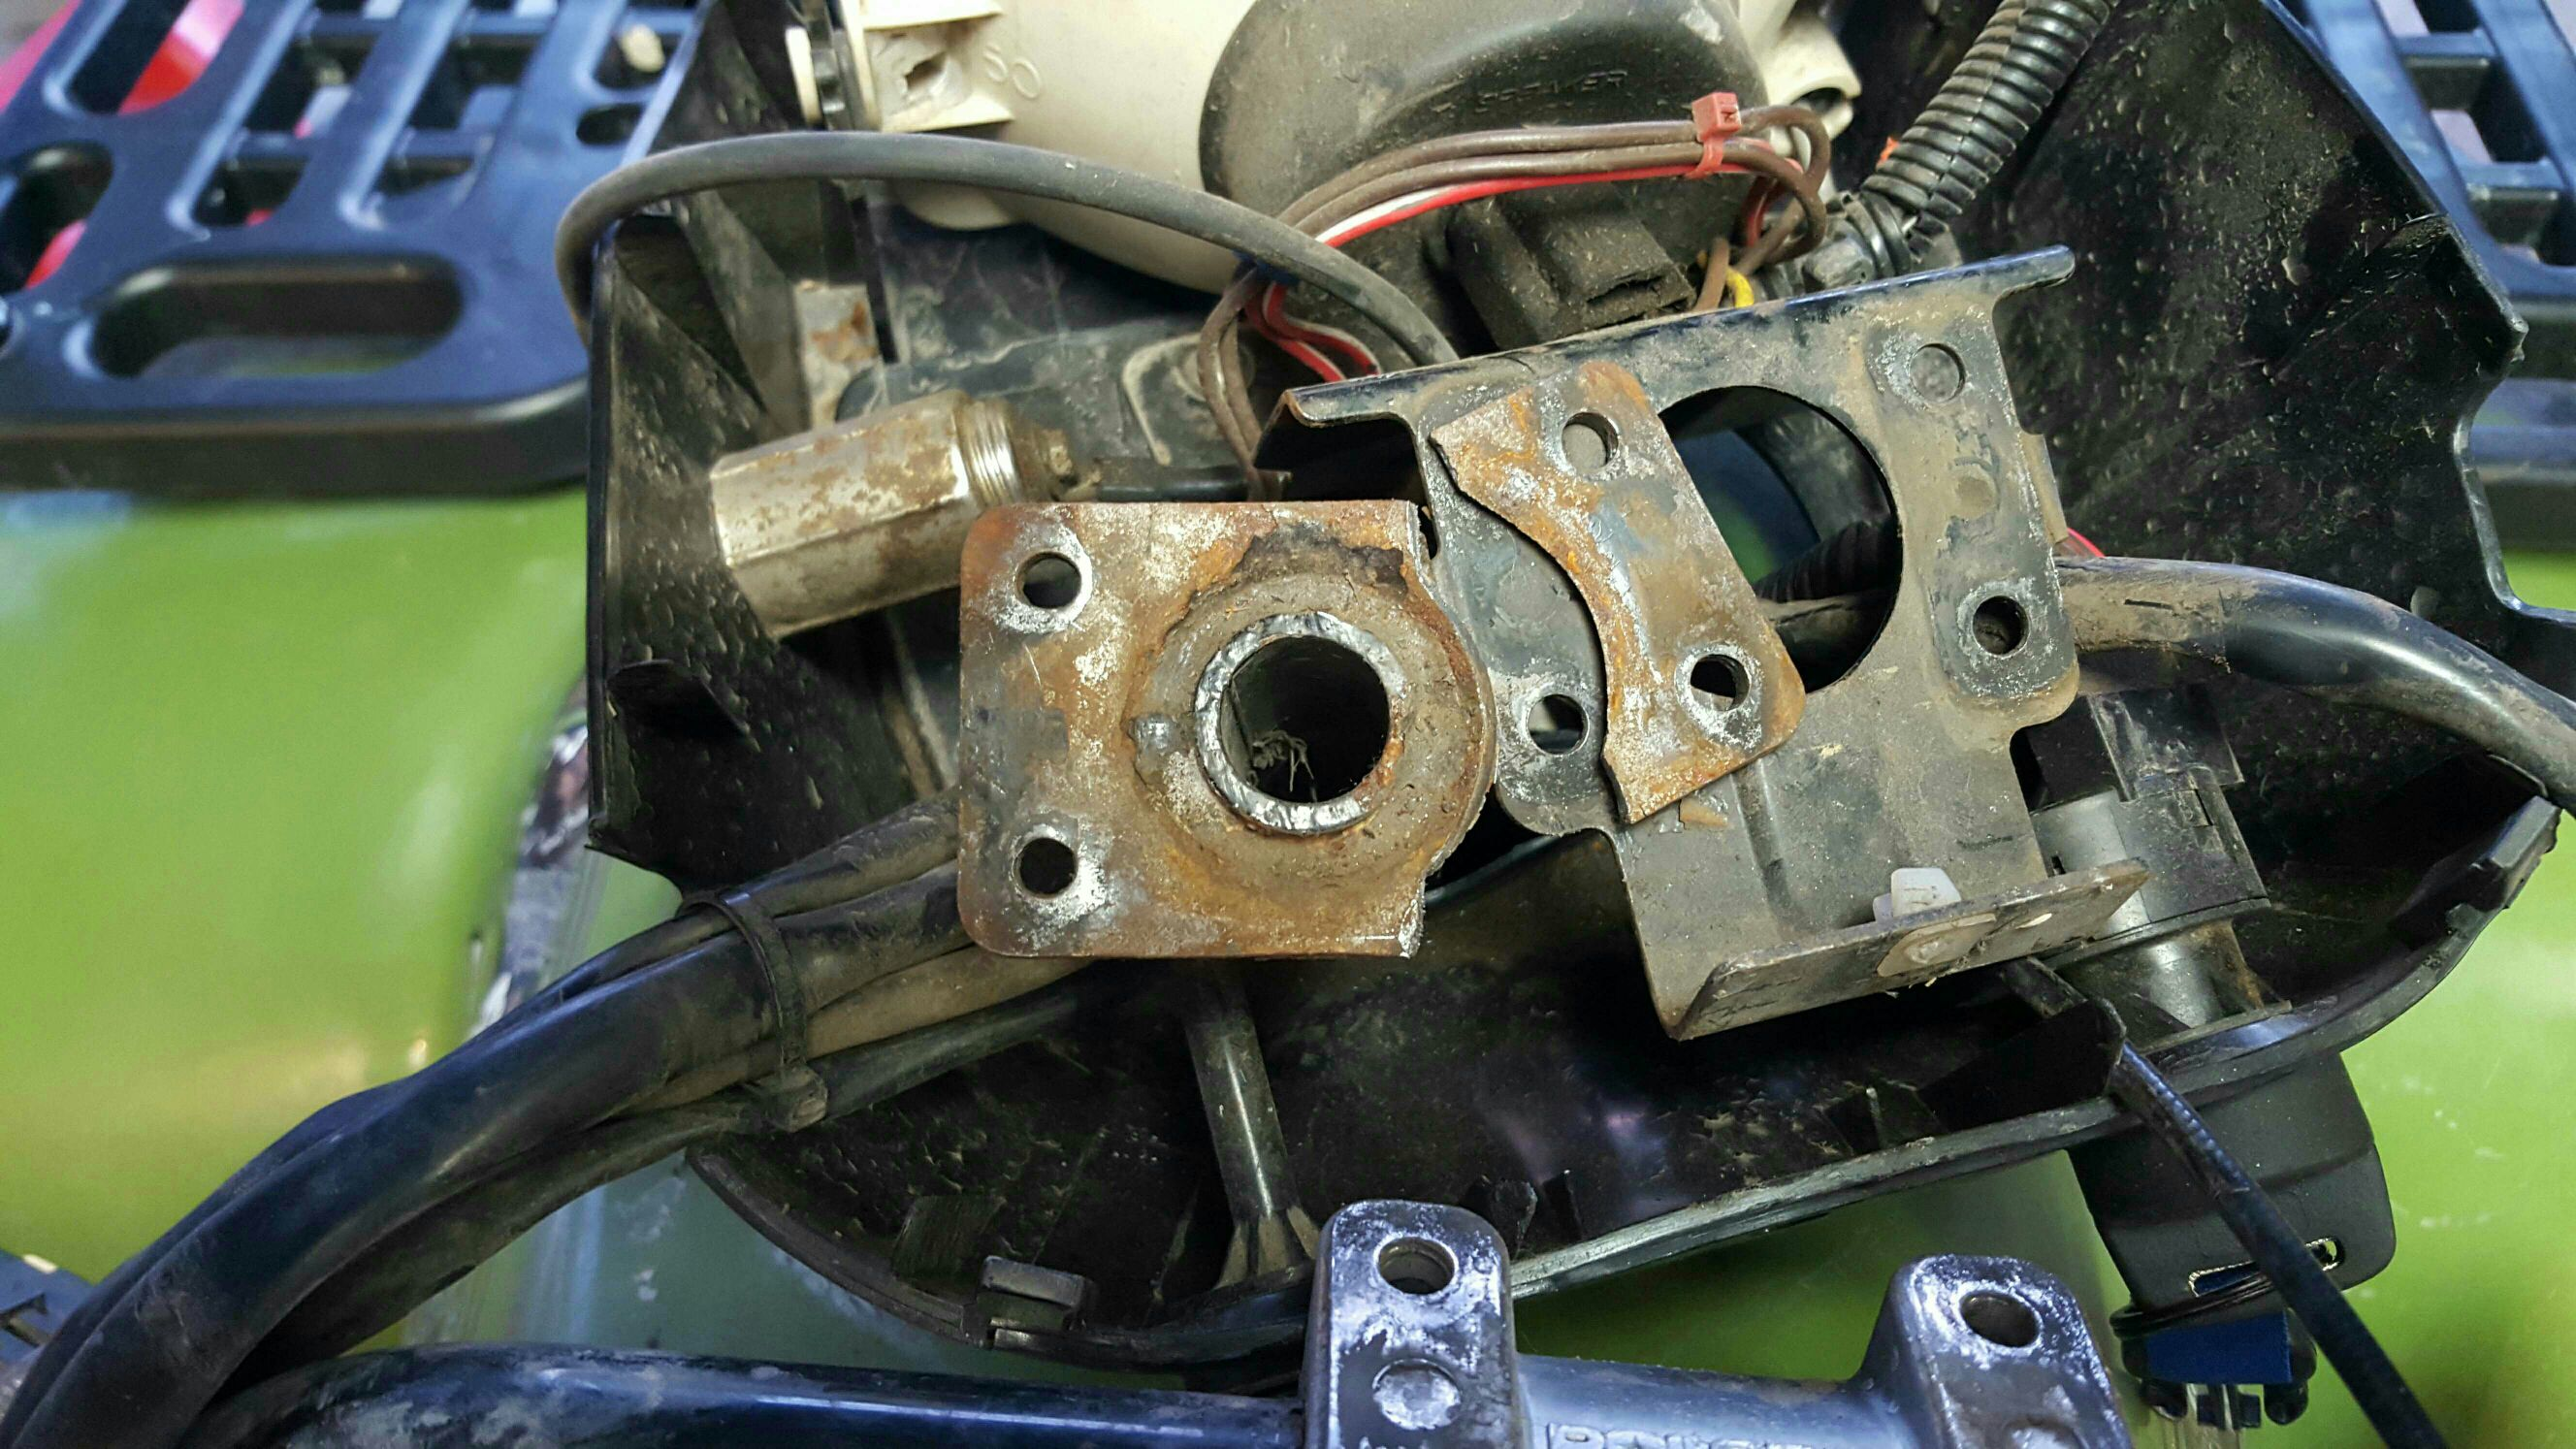 Steering Stem handlebar mount broke? - Polaris ATV Forum